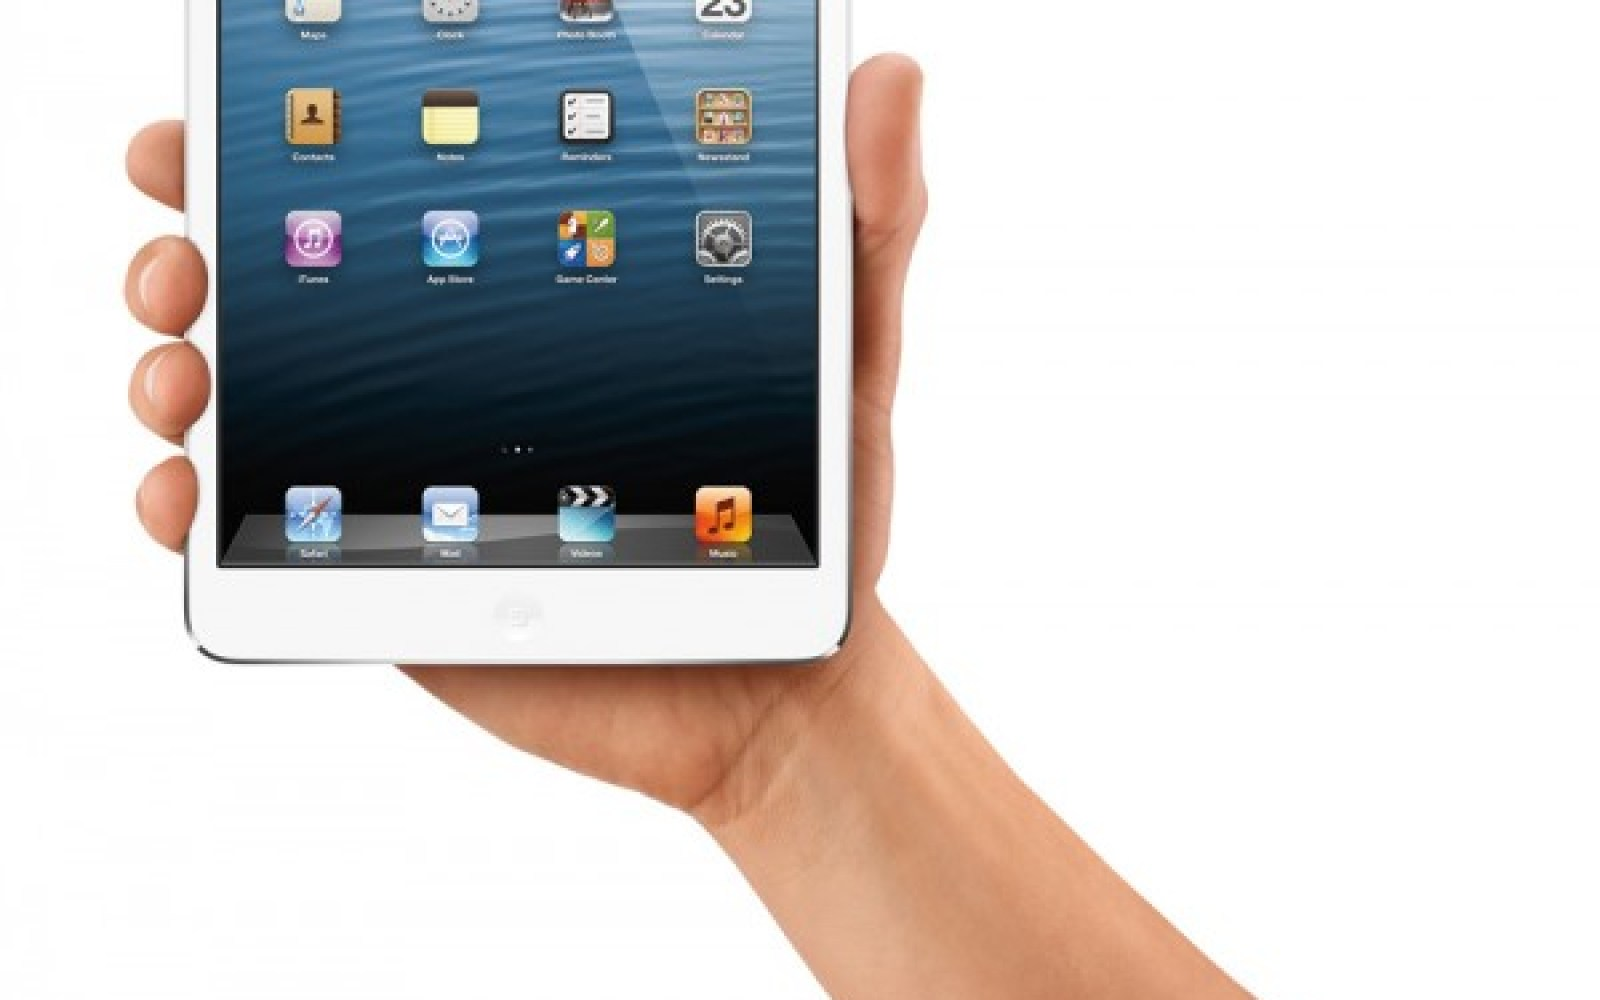 Pegatron CEO says Bloomberg reporter made up report of 'falling iPad mini demand'